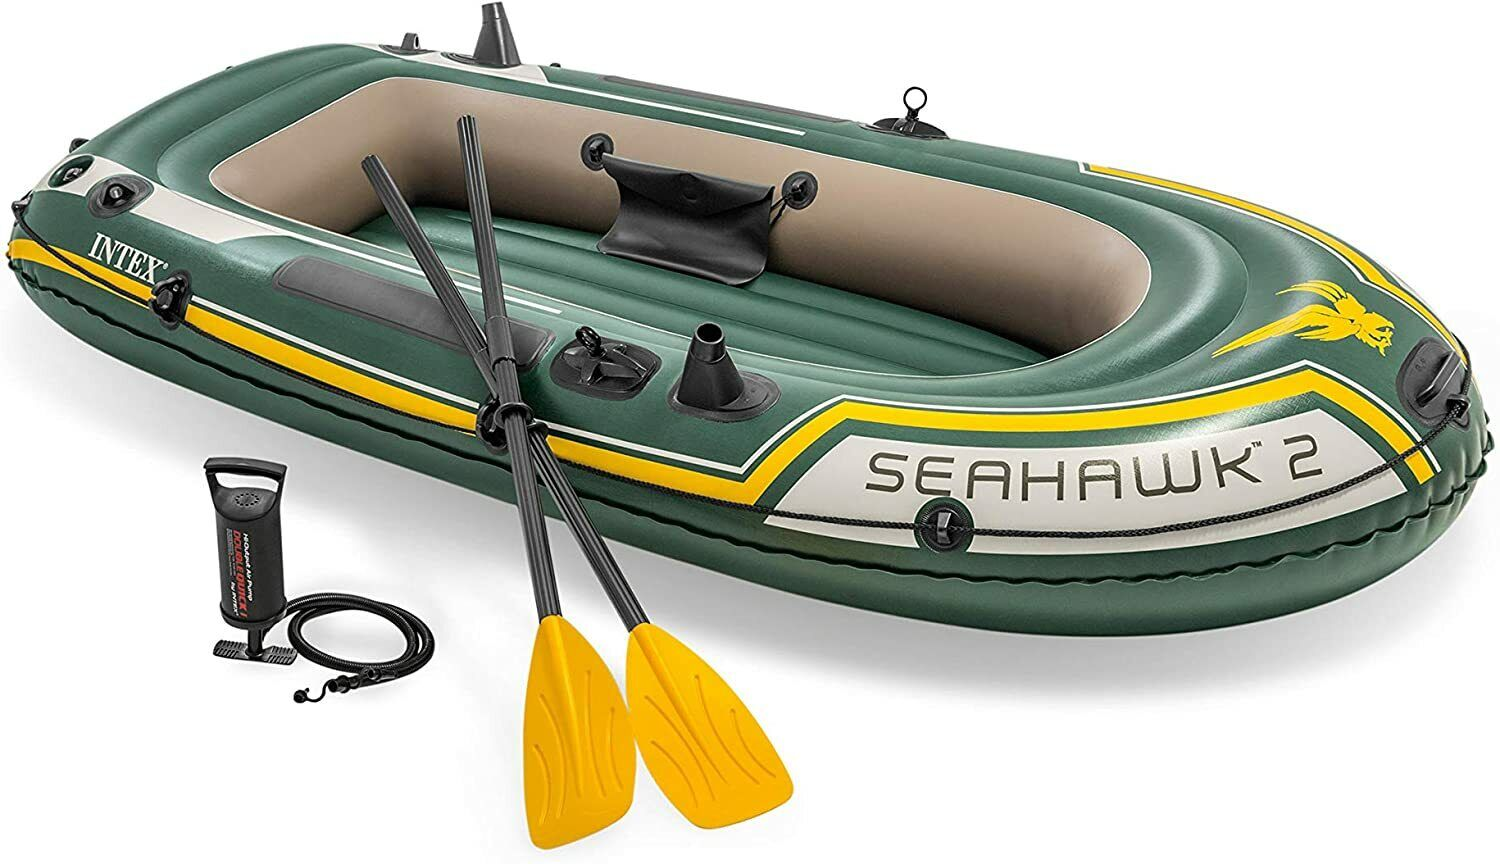 ✅ Intex Seahawk 2, 2-Person Inflatable Boat Set with Frenc